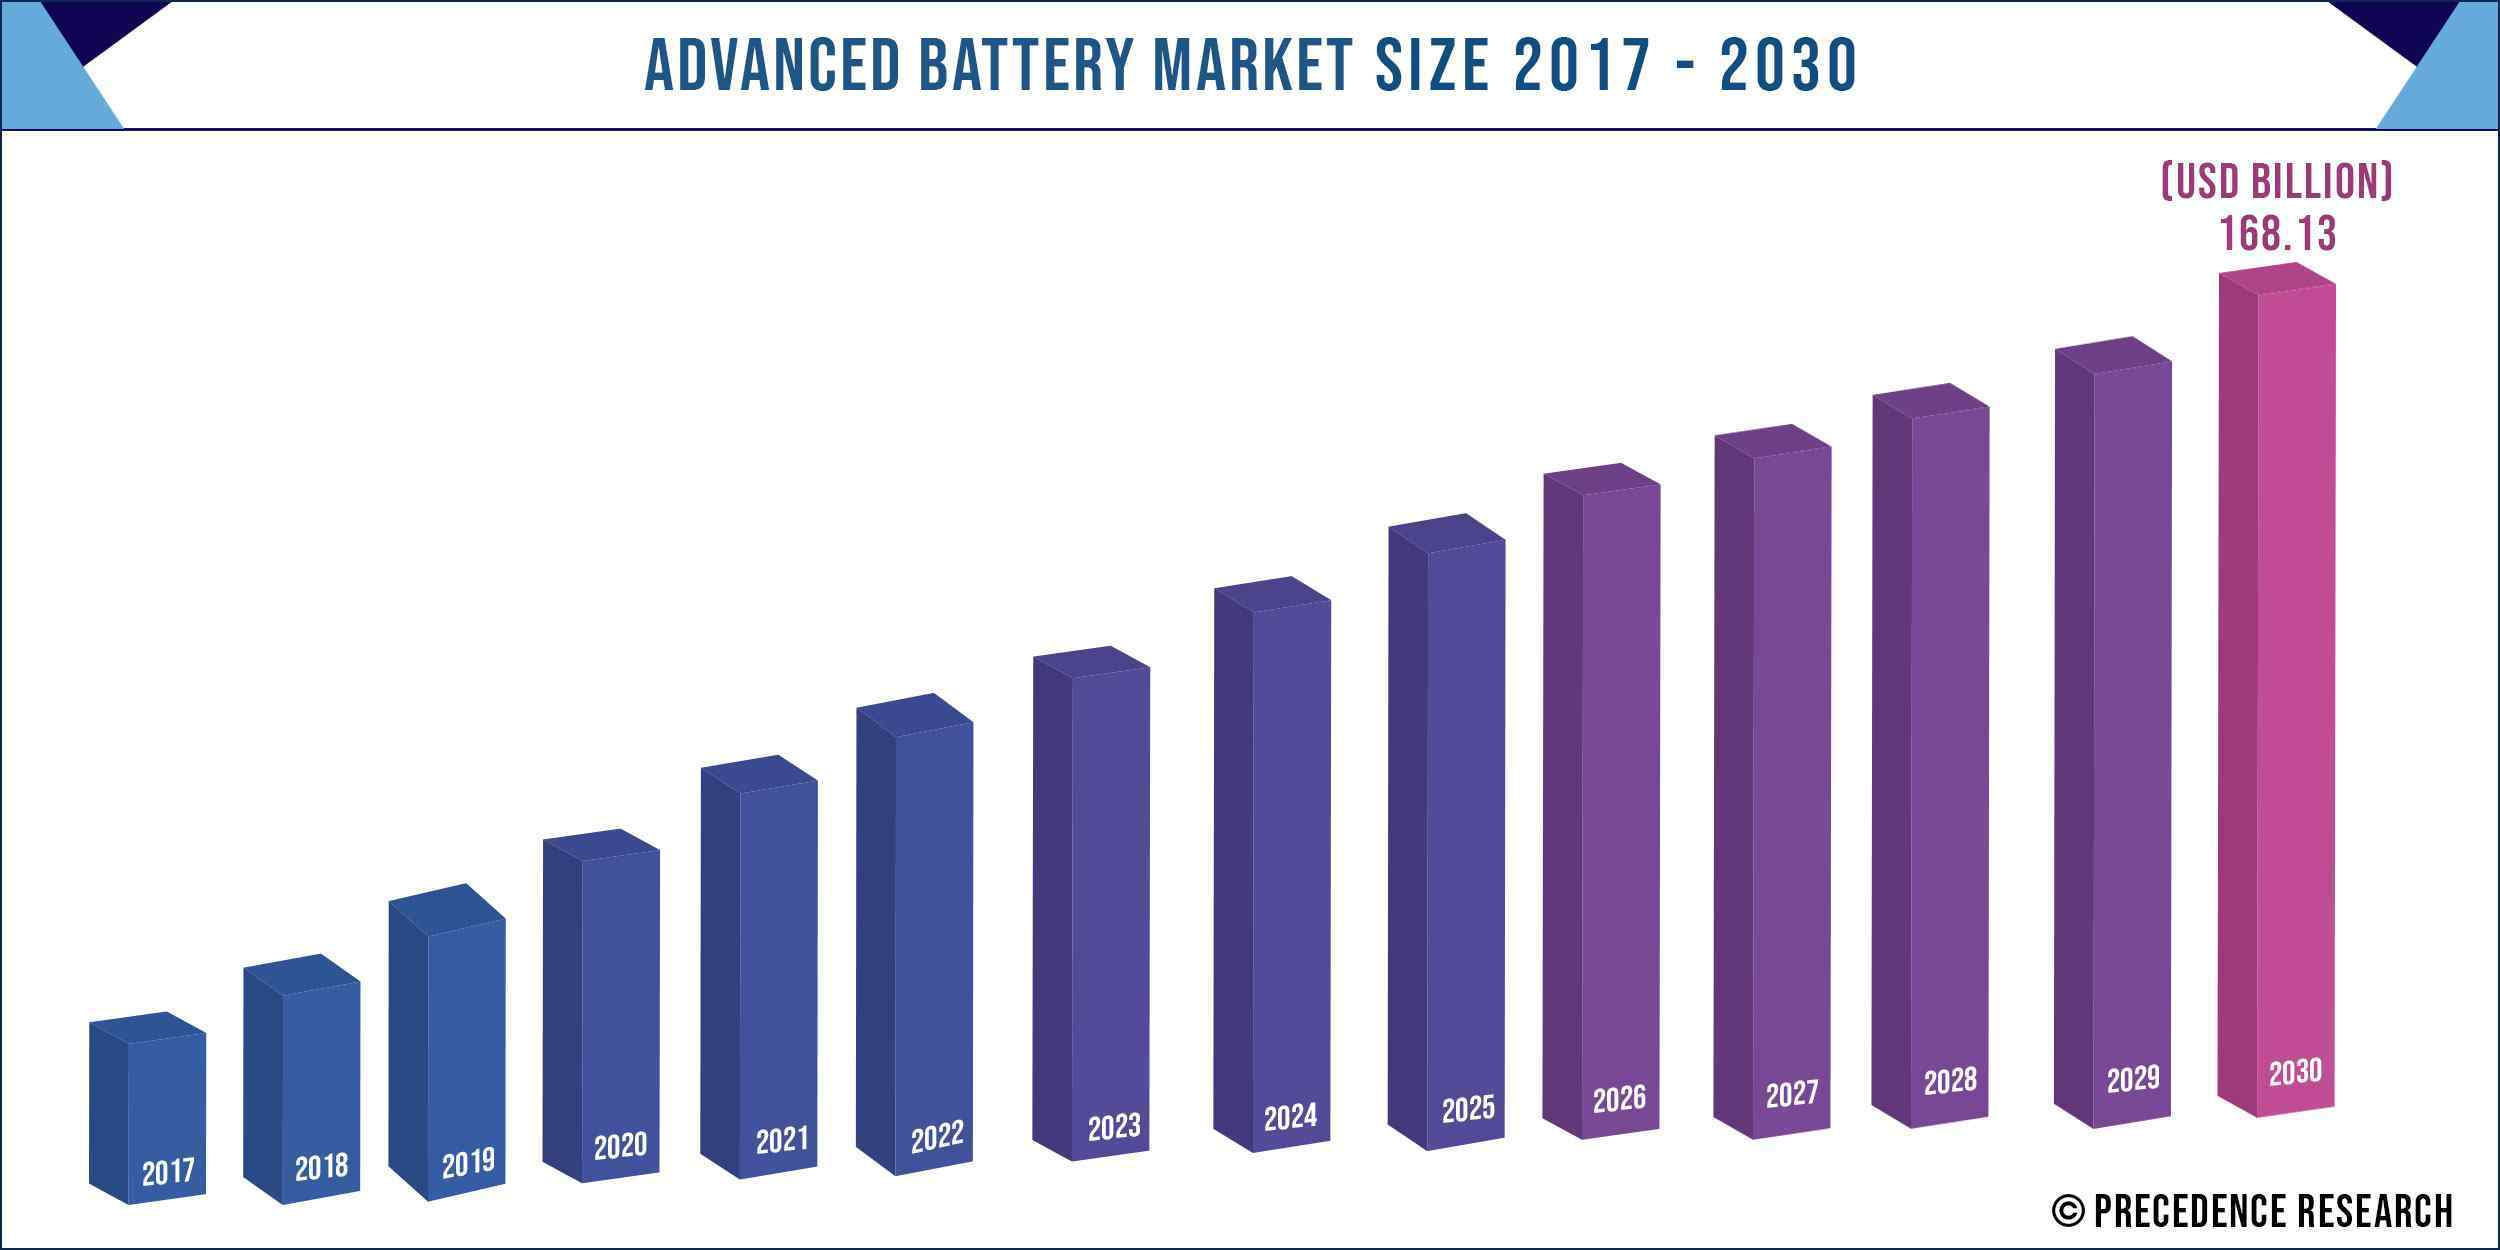 Advanced Battery Market Size 2017 to 2030